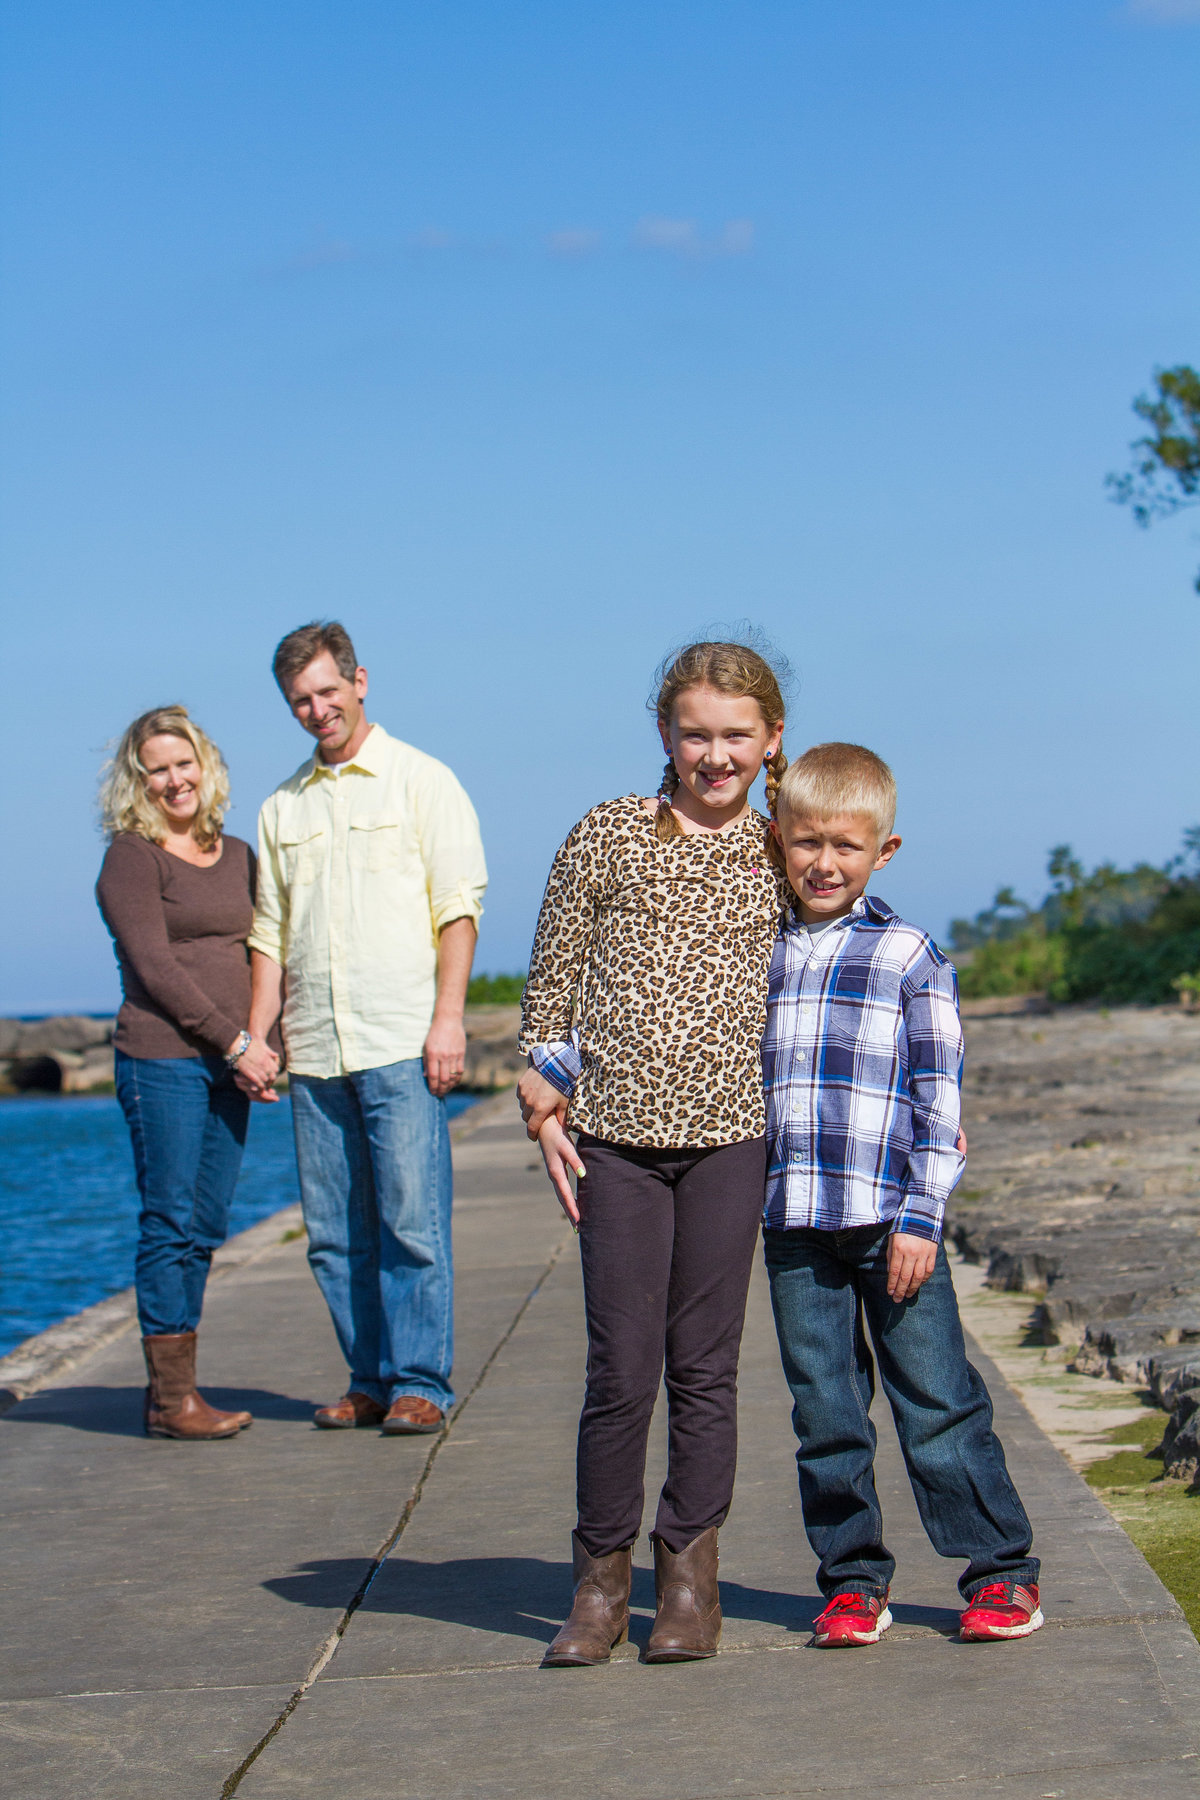 Family portrait on boardwalk by lake ontario